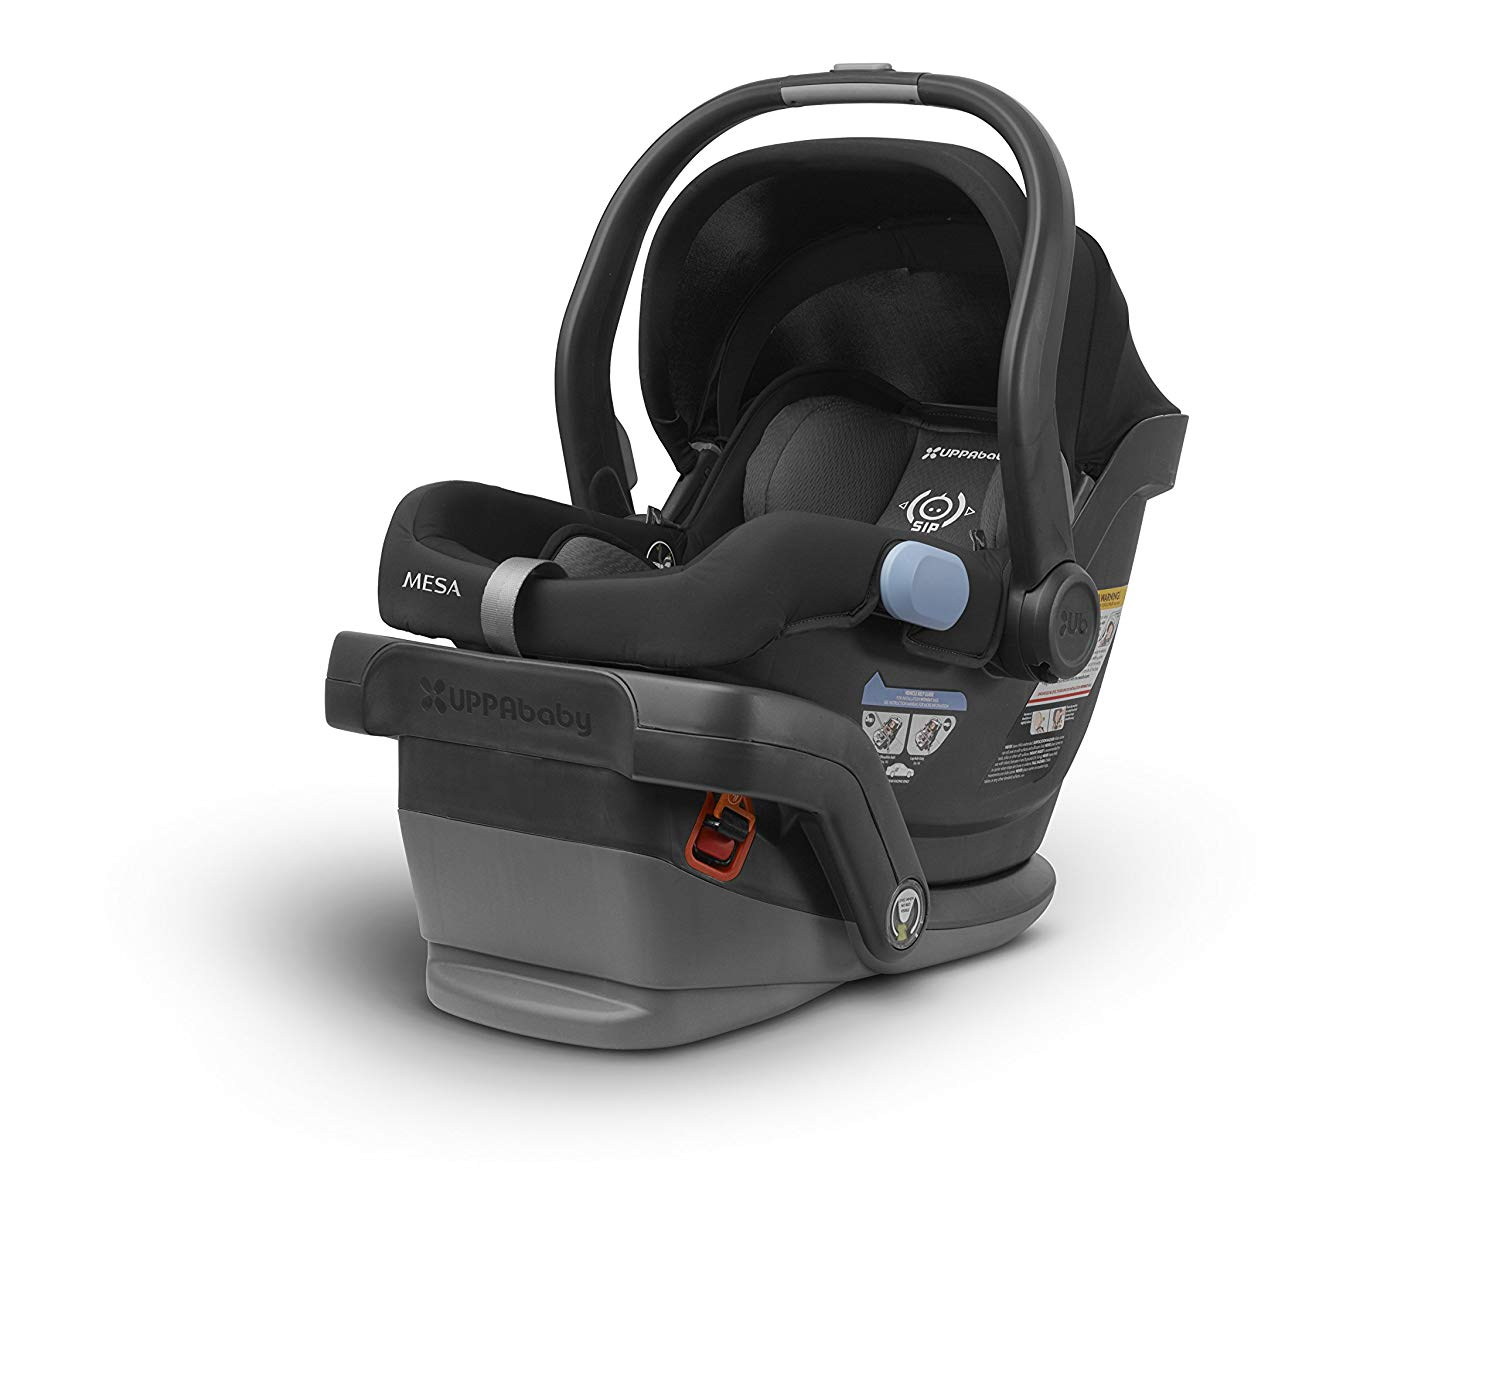 UPPA baby MESA Best Infant Car Seat